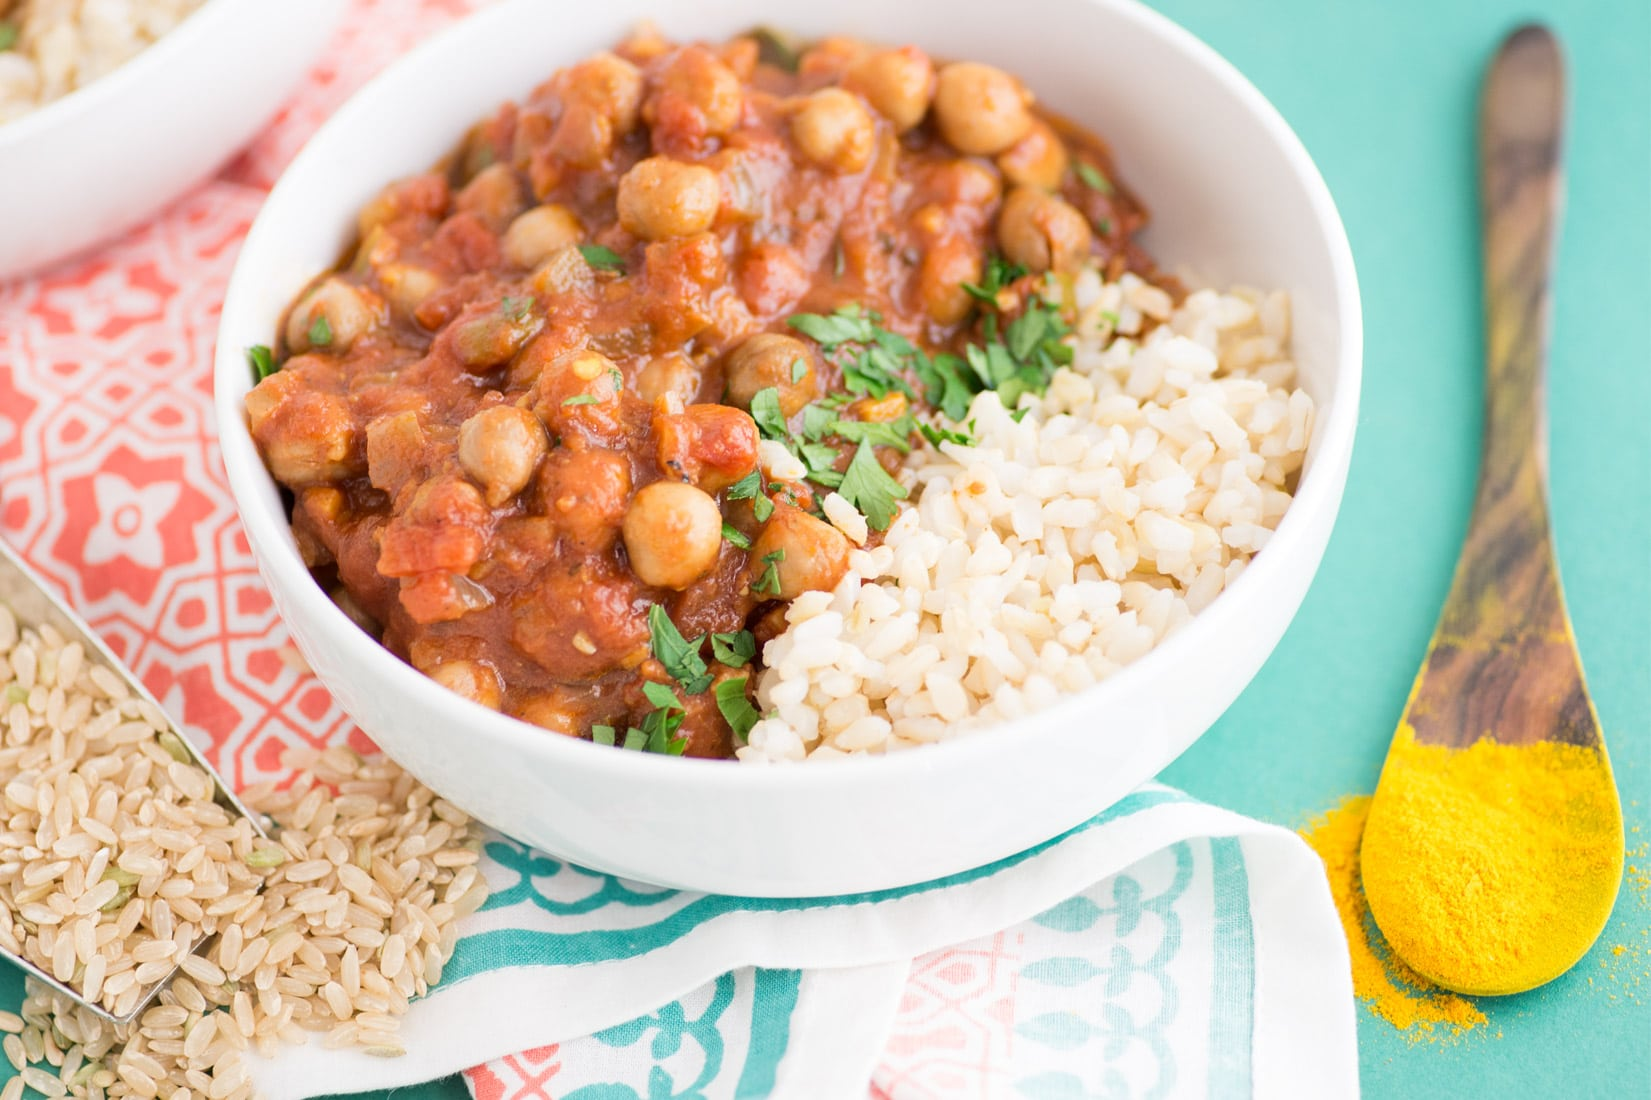 Slow Cooker Chana Masala -- Easy chana masala recipe made with healthy ingredients. Just throw everything into your crockpot and you will have a comforting flavorful meal waiting for you. Top this vegetarian Indian recipe over a bed of rice for a wholesome plant based dinner. | mindfulavocado